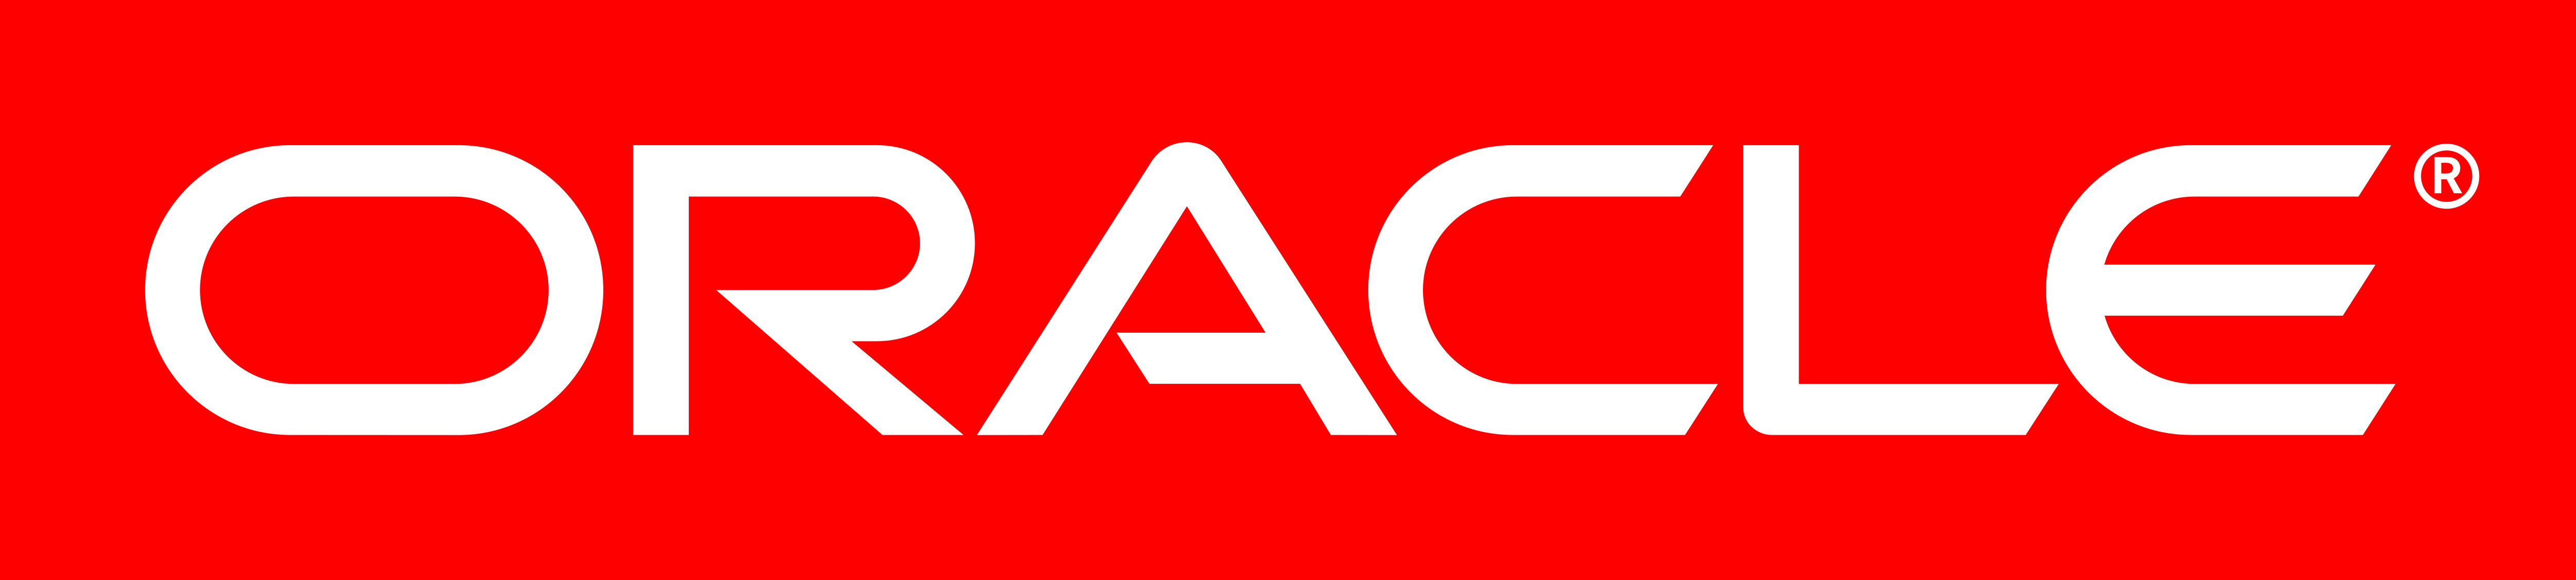 oracle logo 1 1 - Oracle Logo - Oracle Corporation Logo